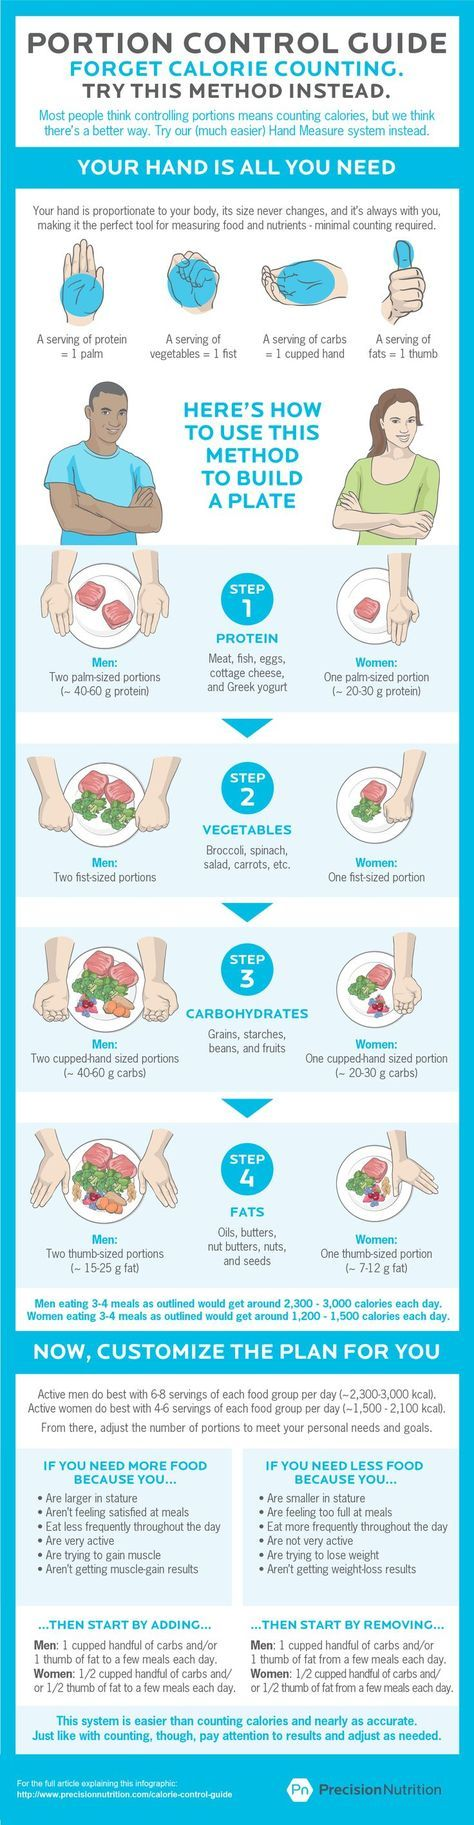 [The best calorie control guide] Learn how to eat the right foods, in the right amounts, every time.